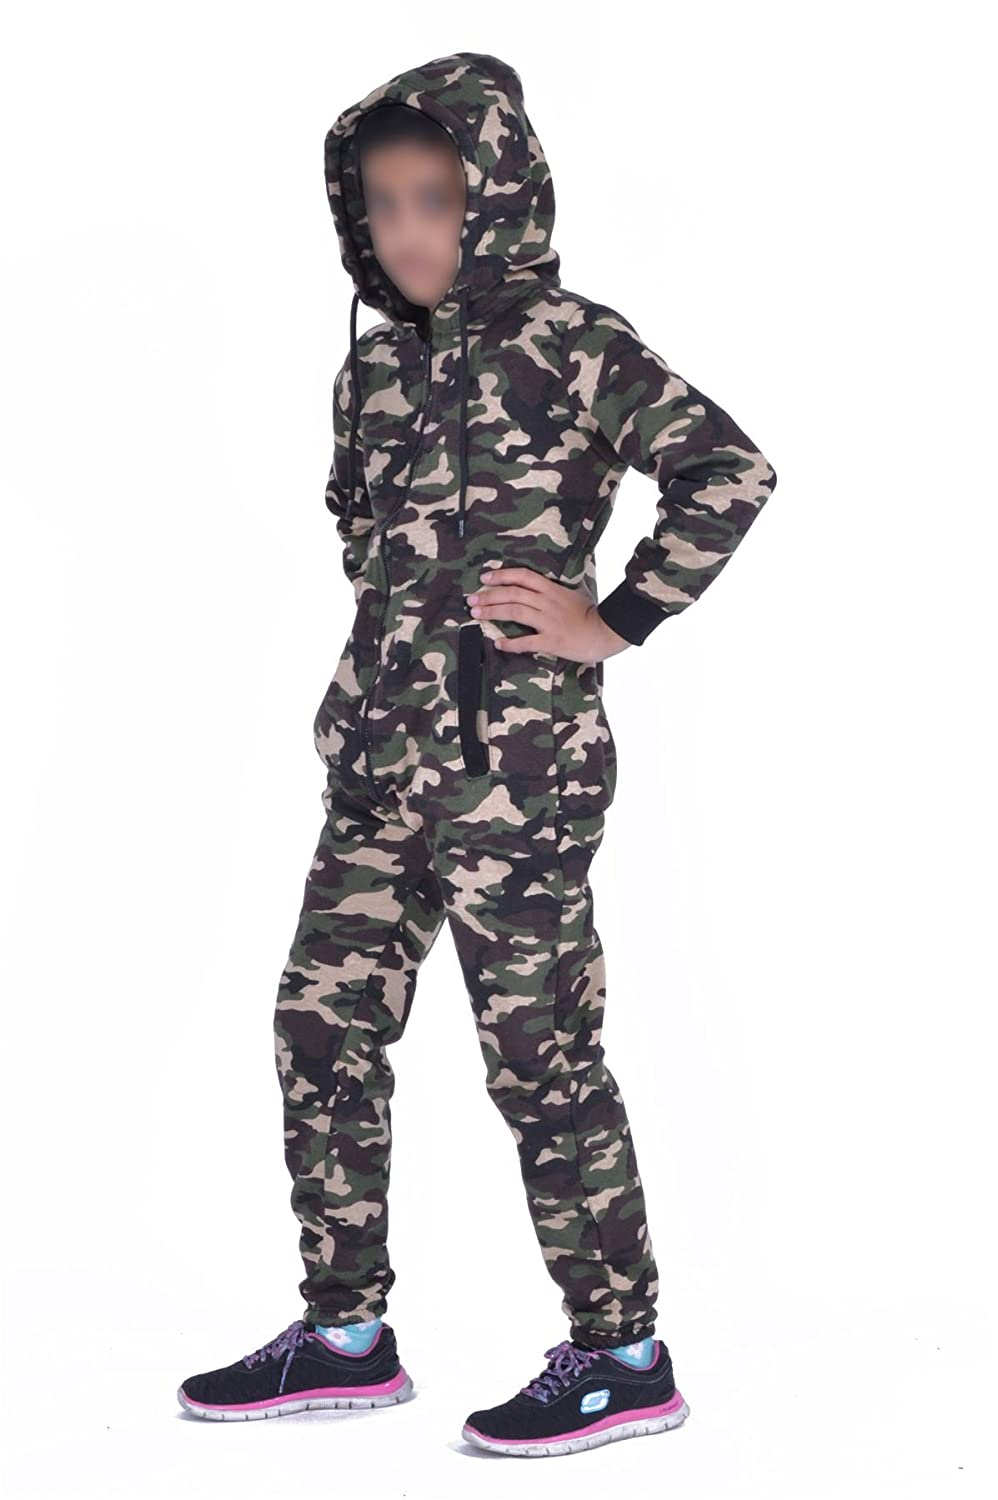 Mymixtrendz® Kids Army Camo Print Onesie Hooded Jumpsuit All in One Boys Girls Fleece Tracksuit Age 7-13 MMT